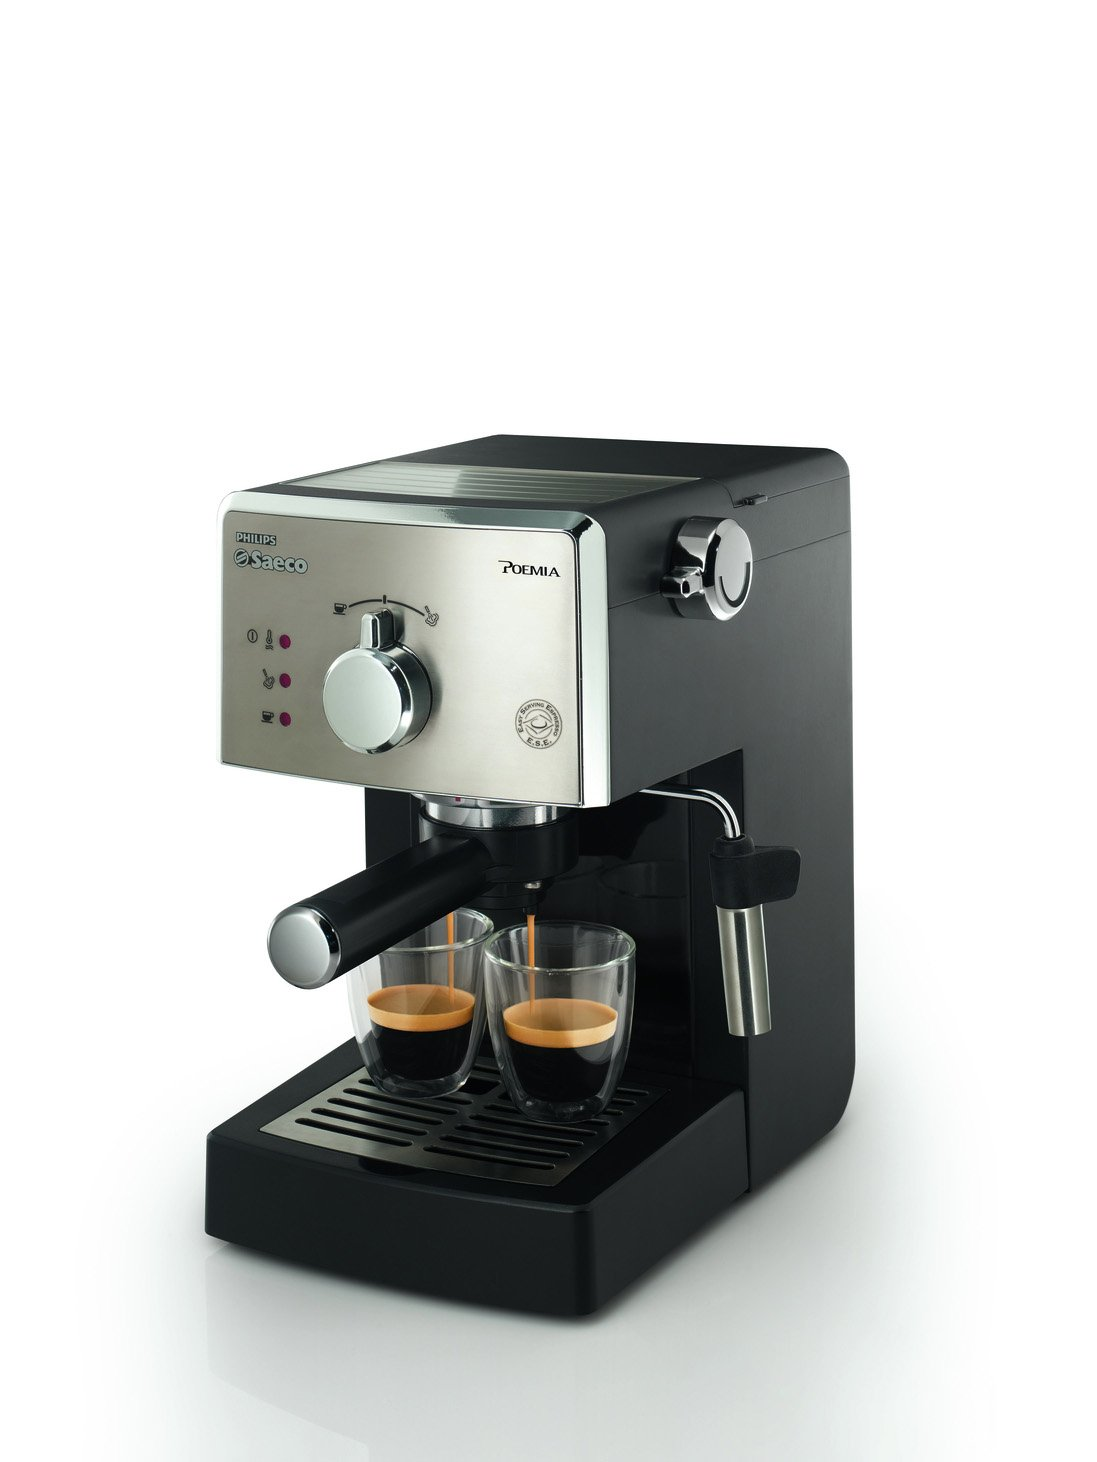 Amazon.com: Philips Saeco HD8327/47 Poemia Top Espresso Machine, Stainless Steel: Semi Automatic Pump Espresso Machines: Kitchen & Dining